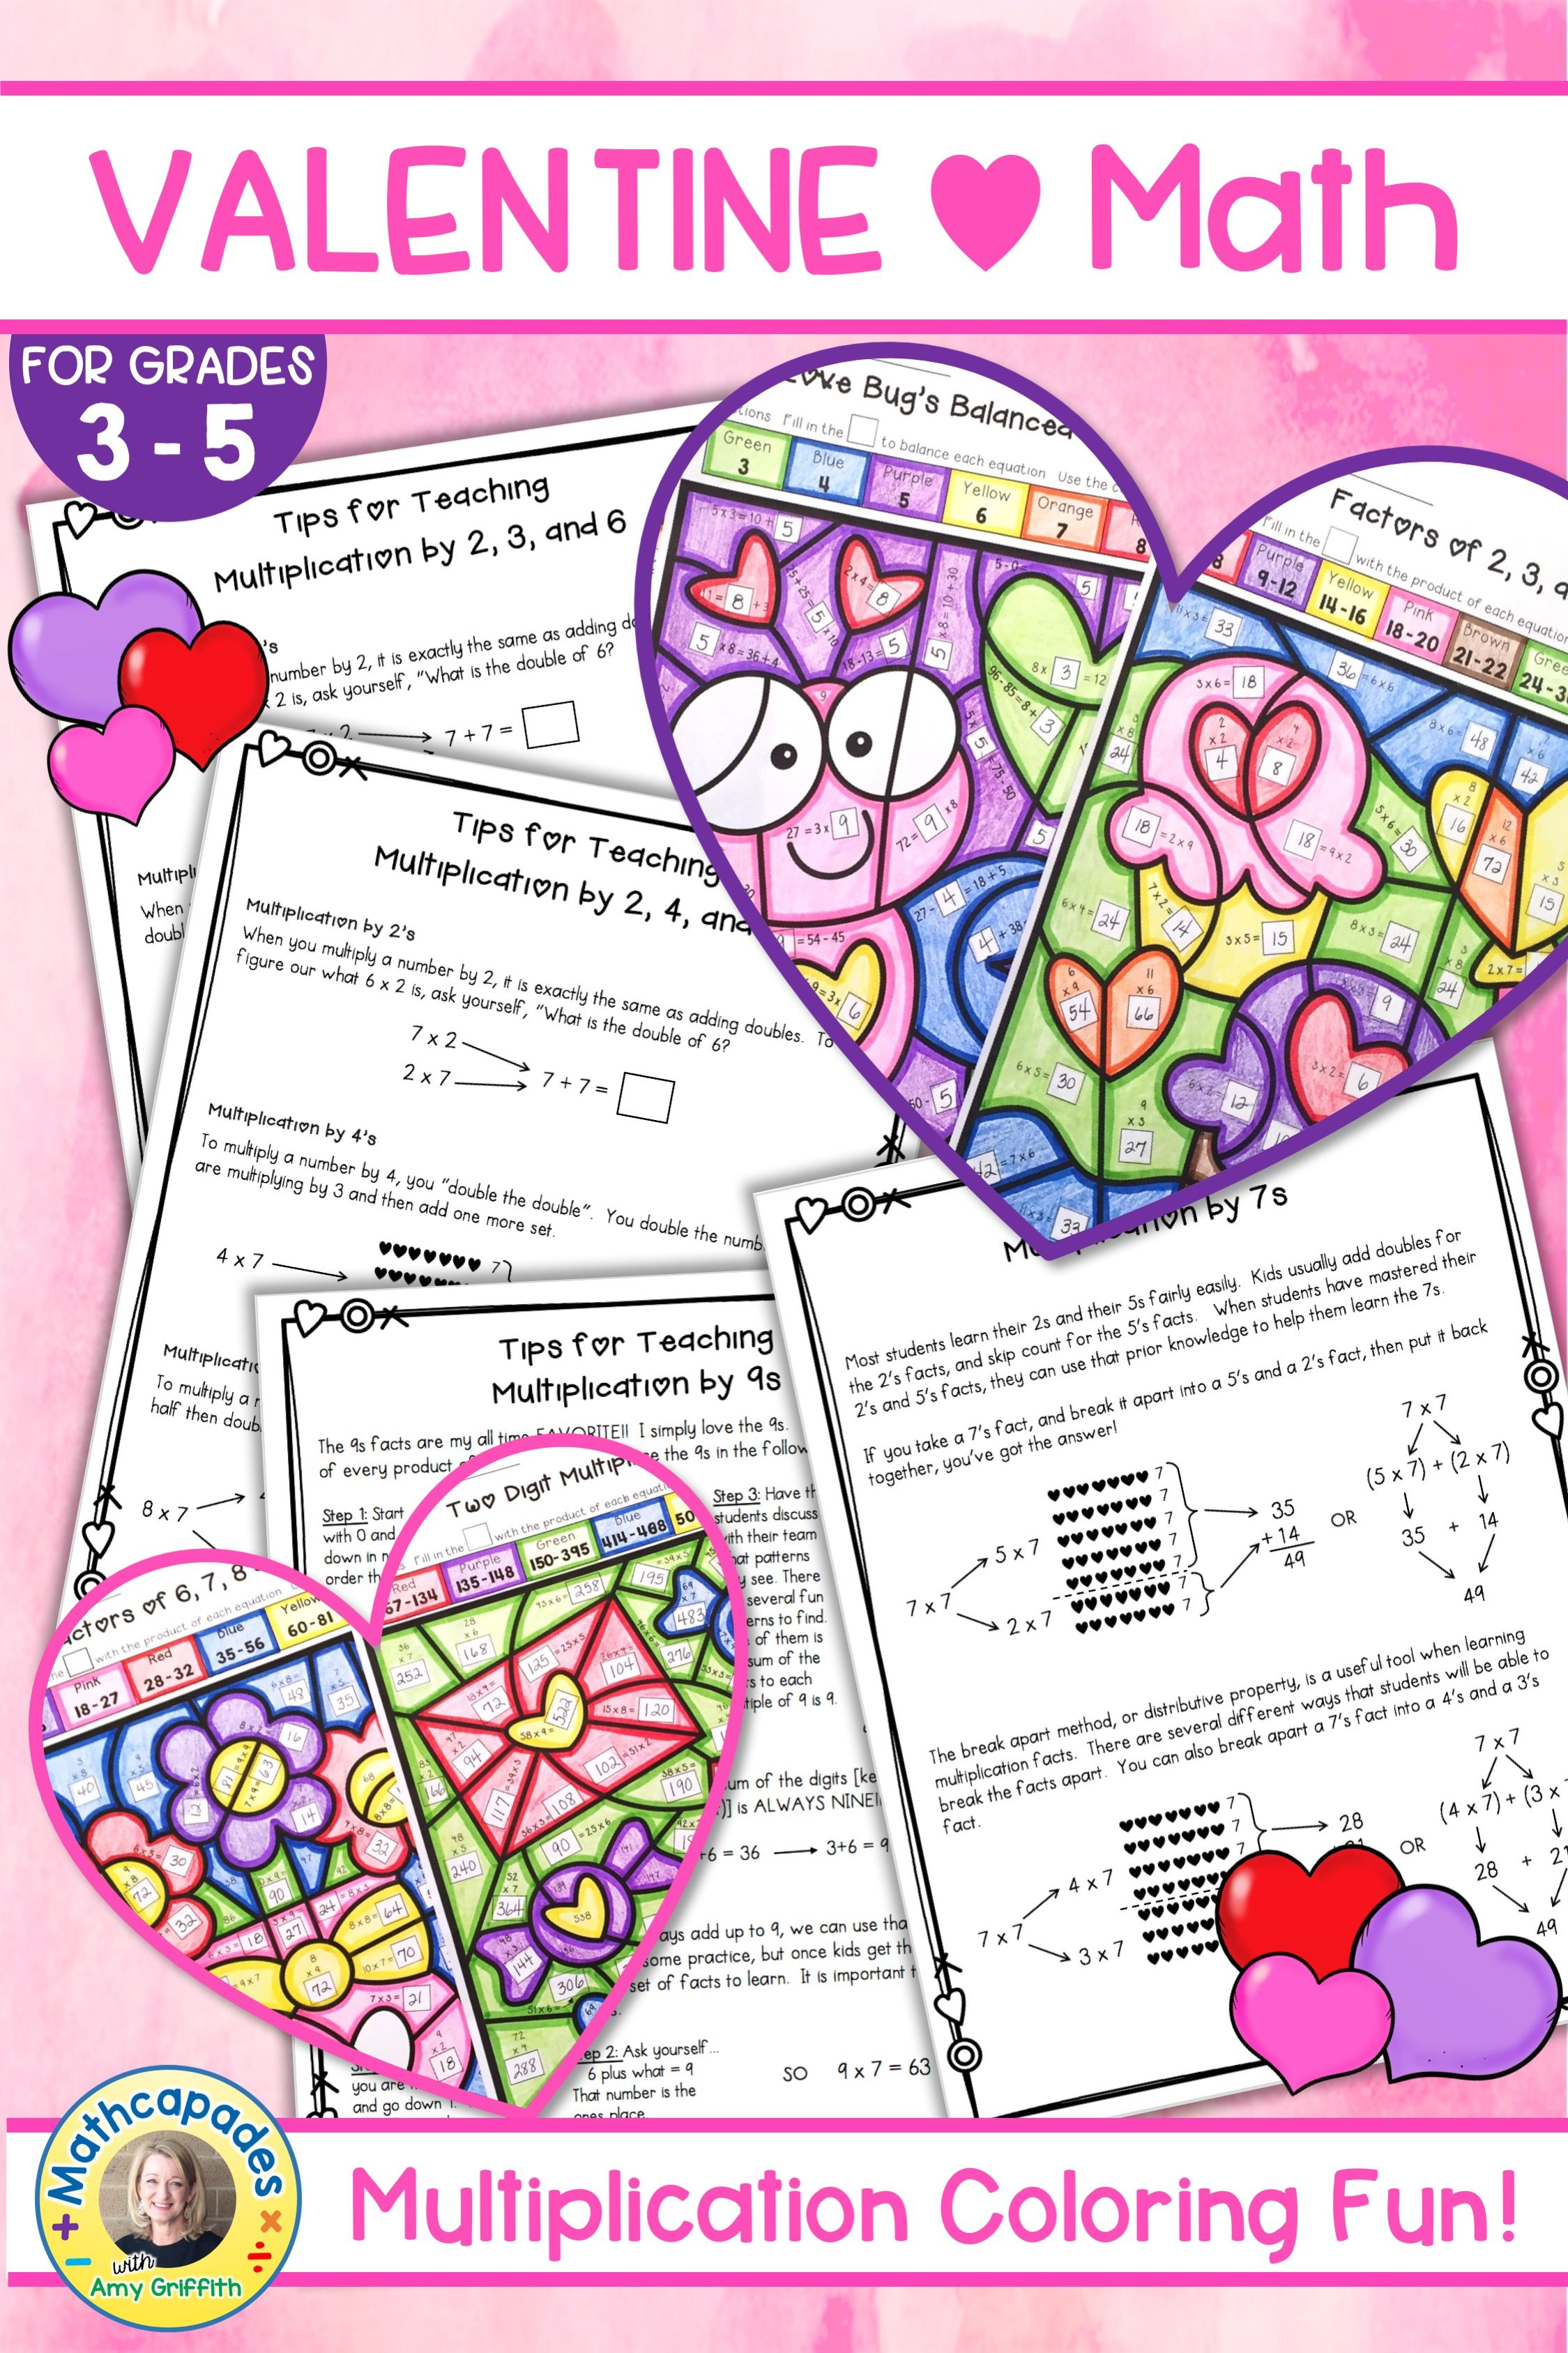 Valentines Day Multiplication Color by Number | Multiplication ...